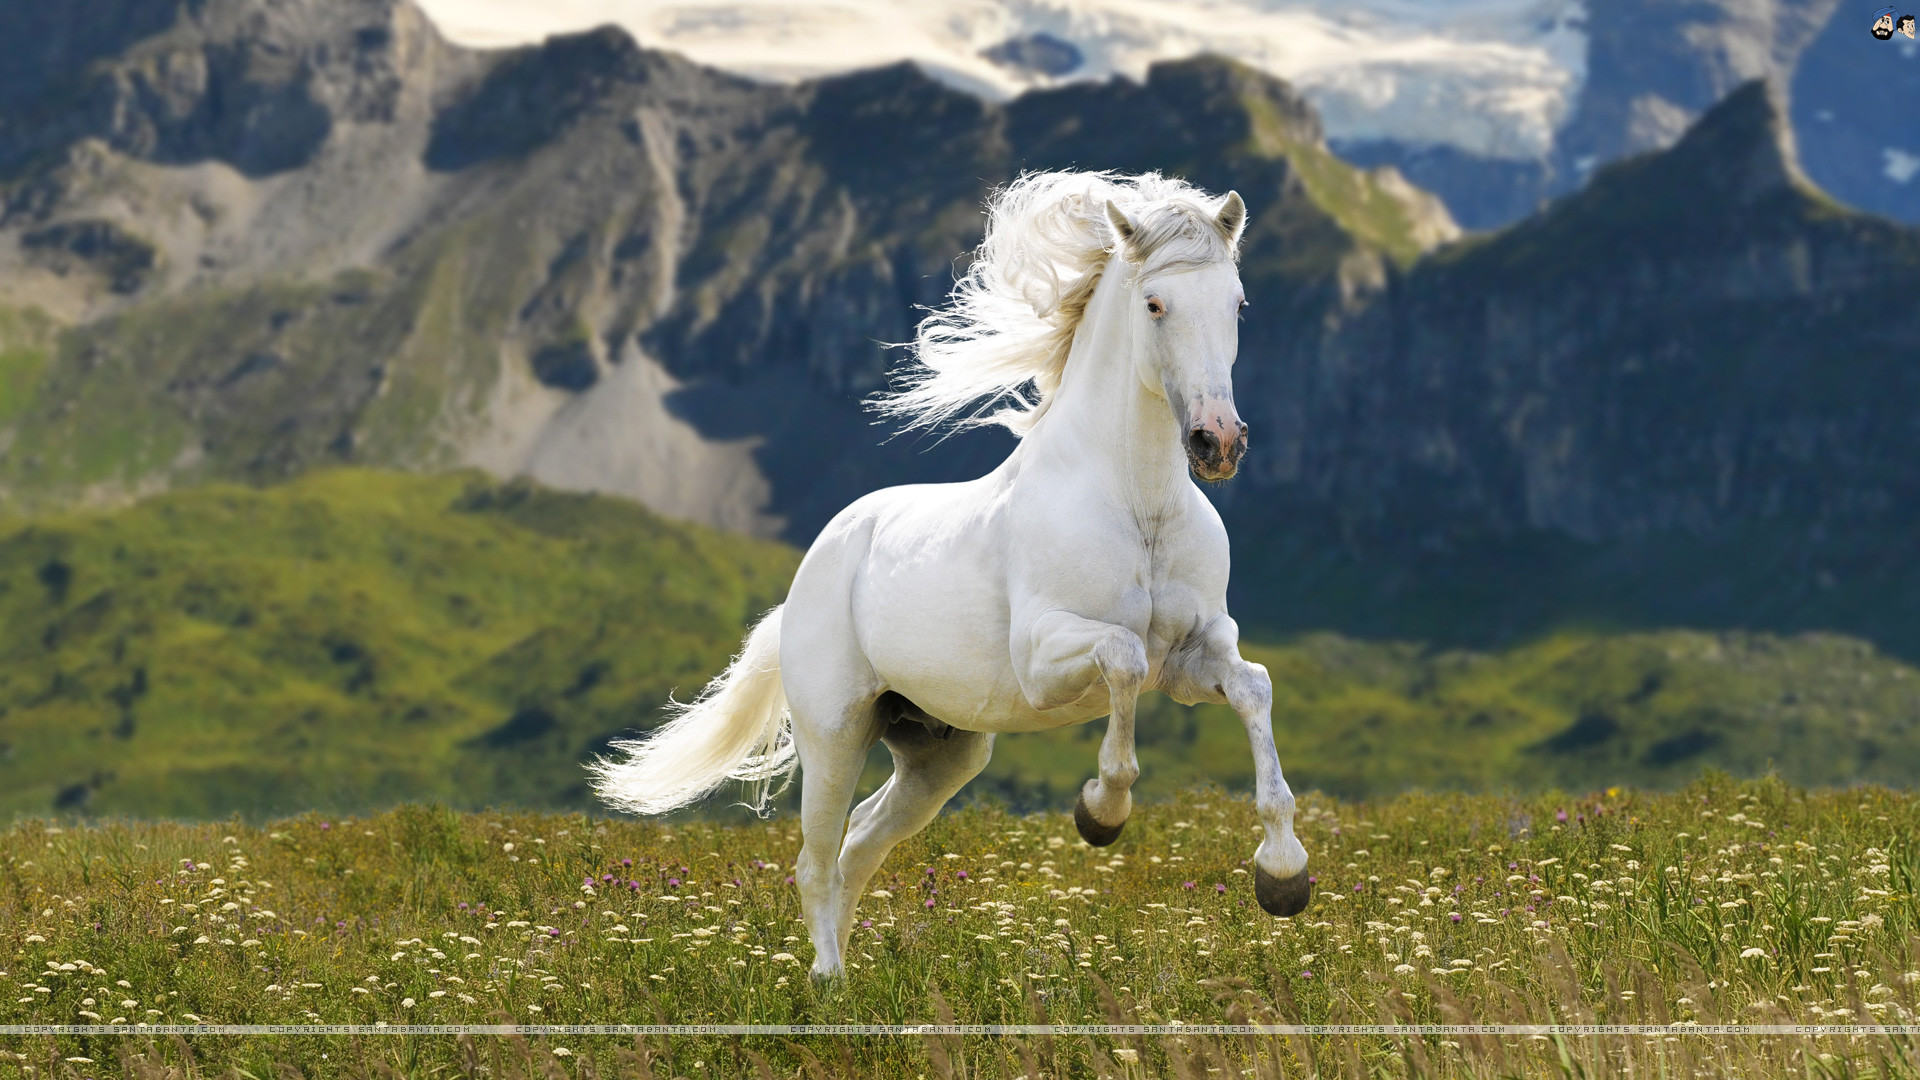 Horse Wallpaper Images 69 Pictures